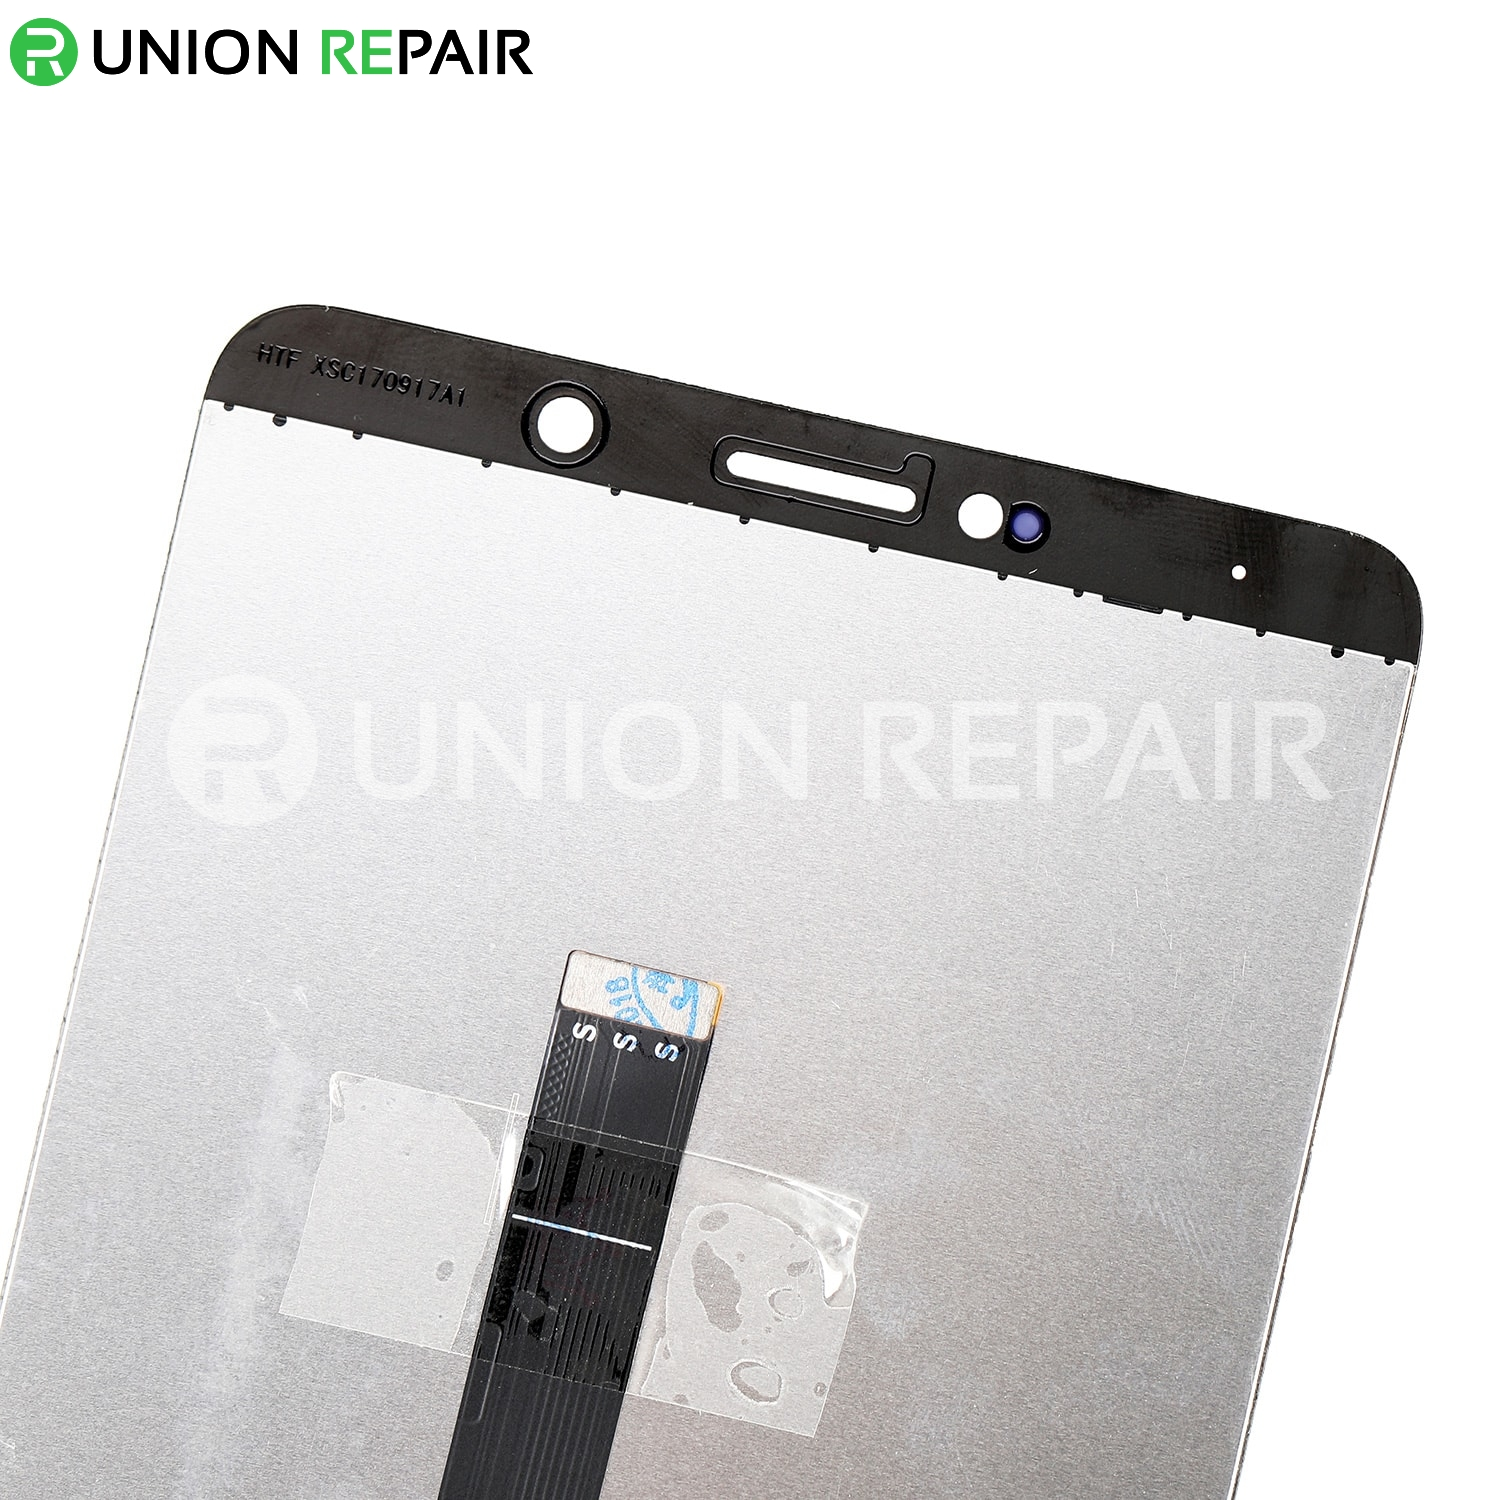 Replacement for Huawei Mate 10 LCD with Digitizer Assembly - White, fig. 1